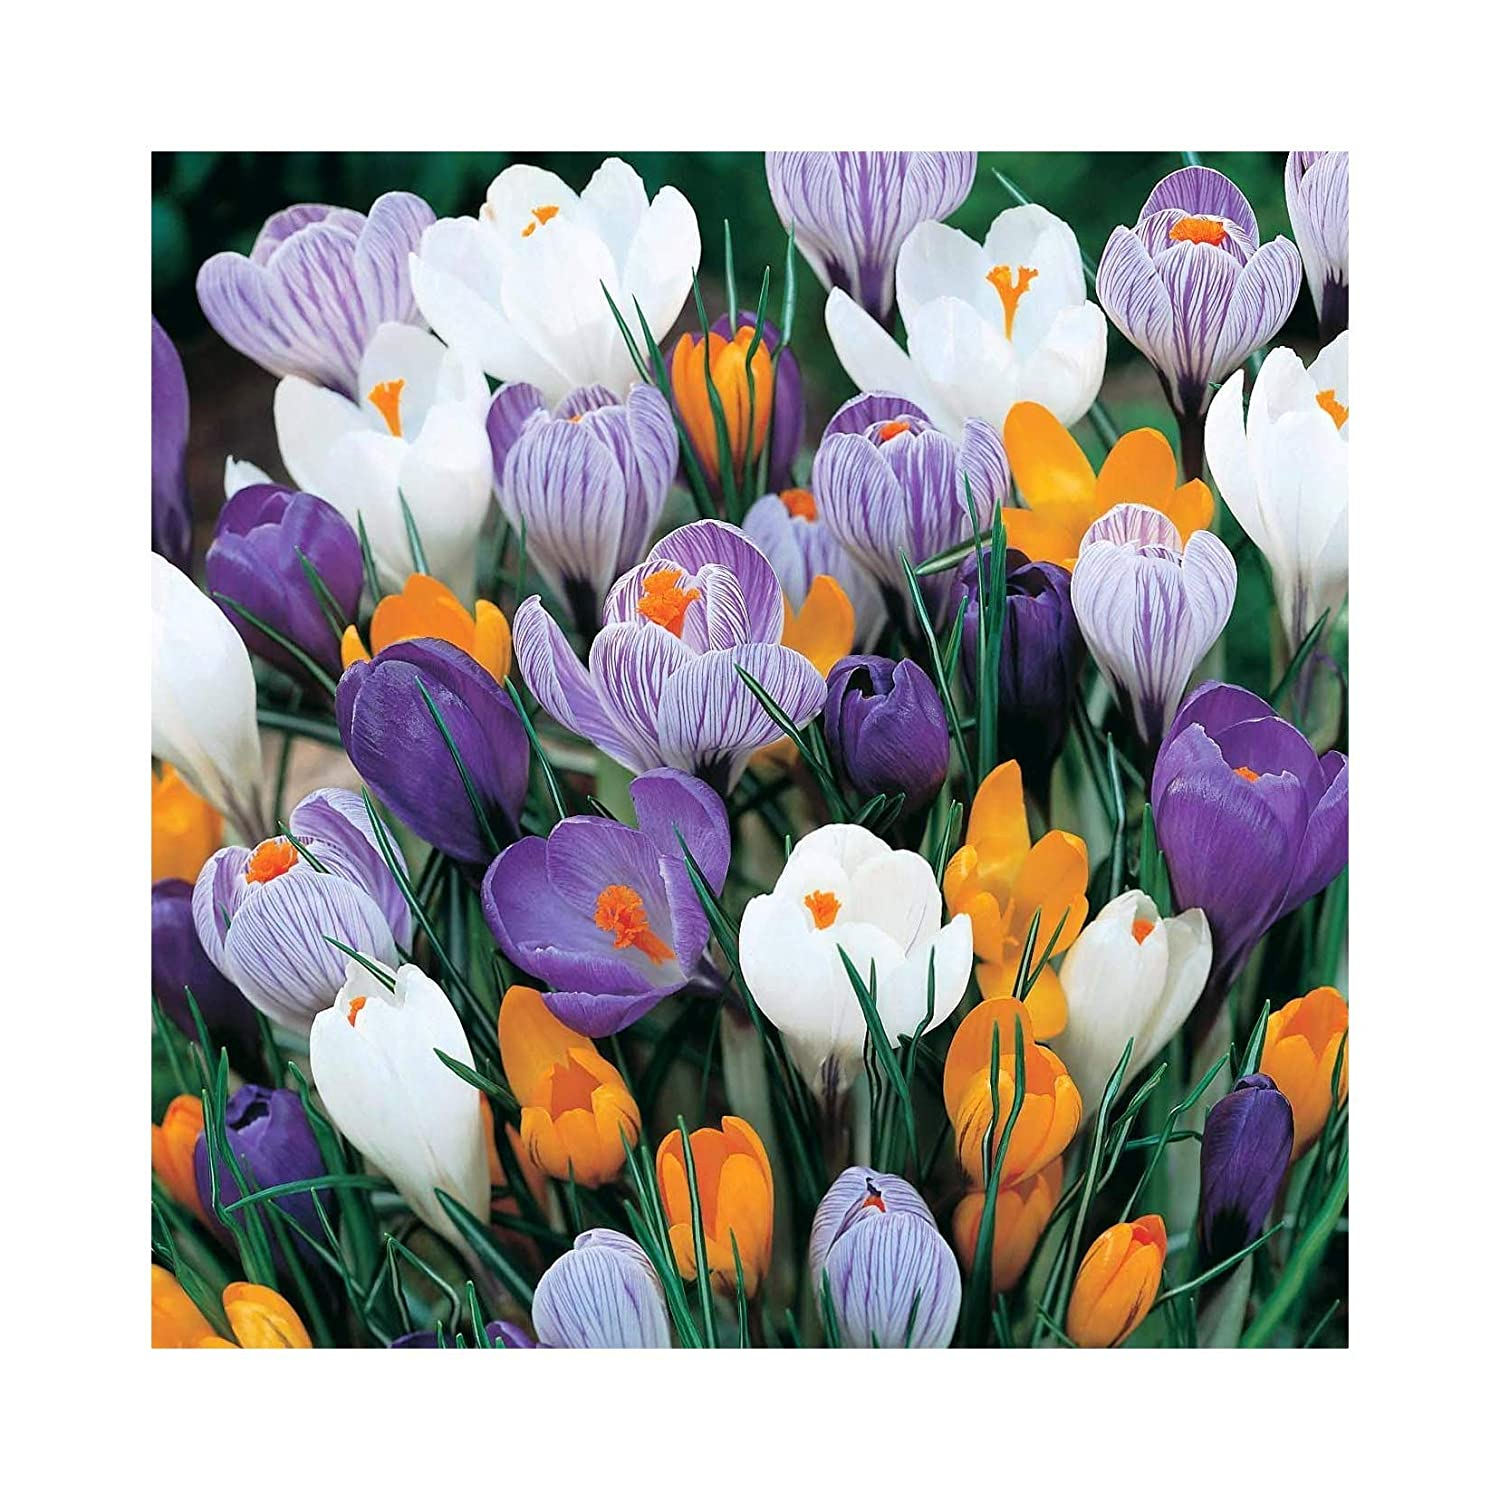 100 Crocus Vernus Mixed Dutch Large Flowering Bulbs Flowering Size by Plug Plants Express Limited